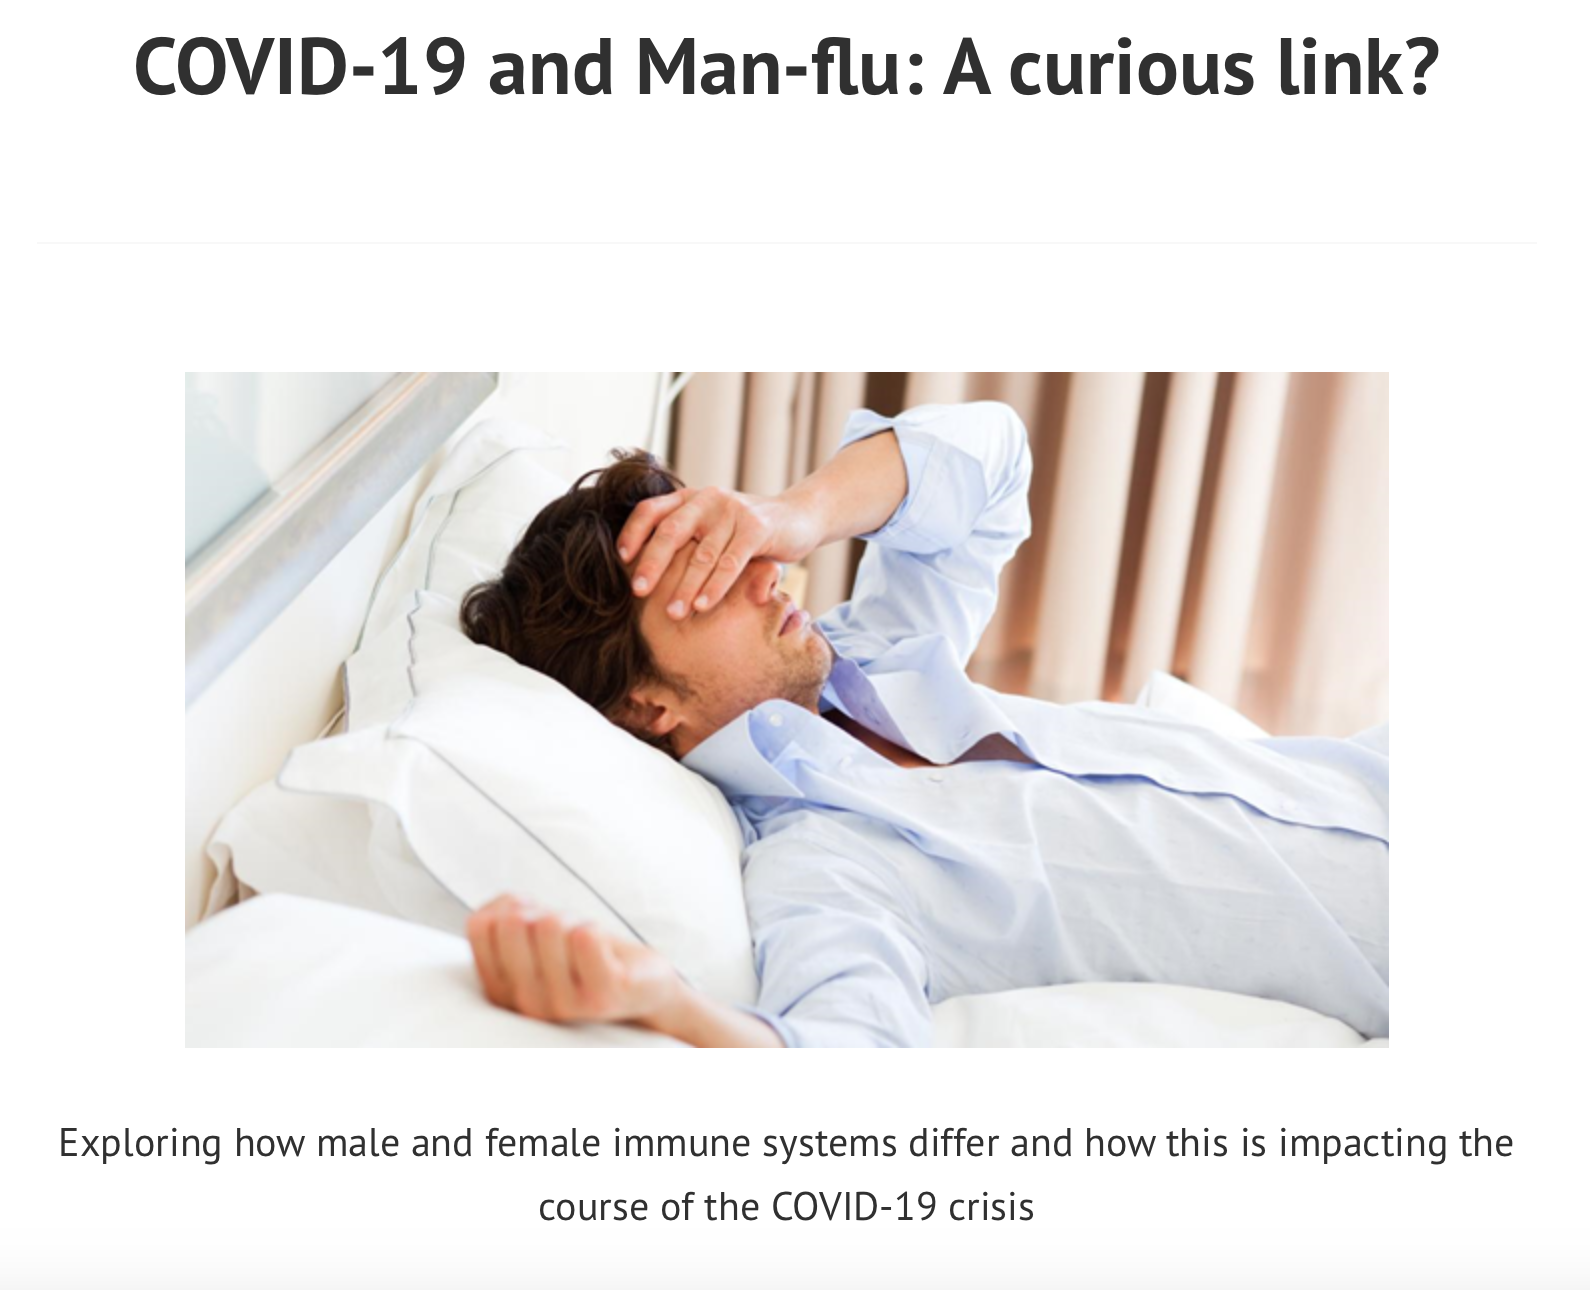 COVID-19 and Man-flu A curious link